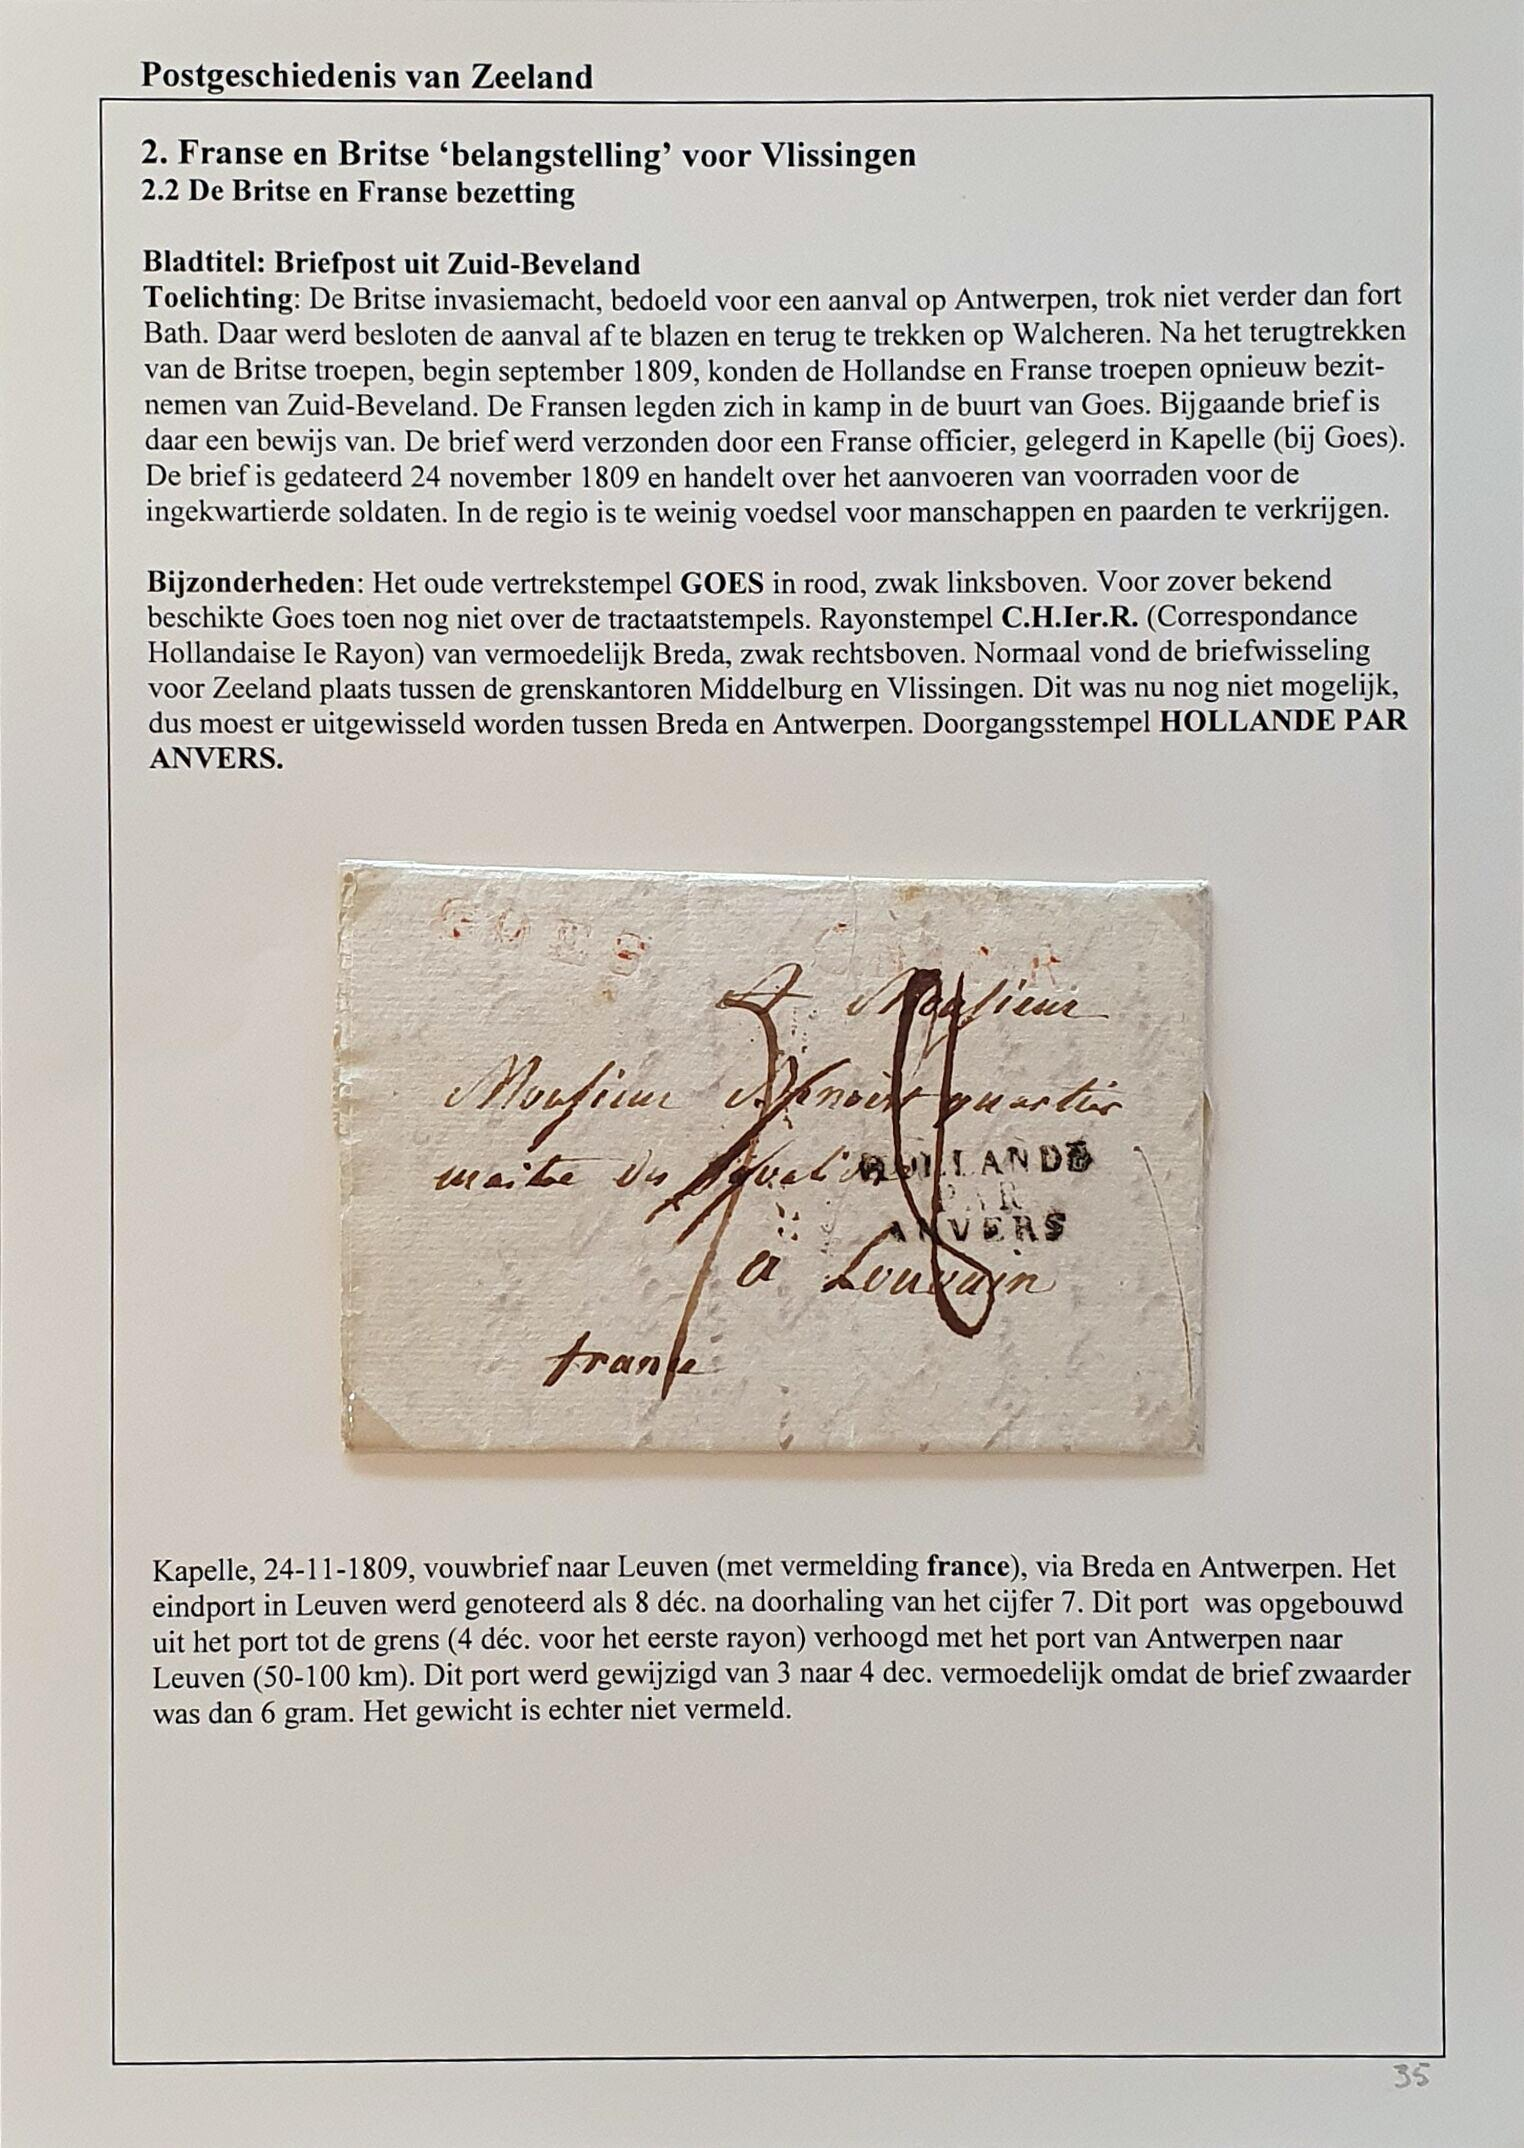 Lot 2327 - Netherlands and former colonies Netherlands -  Corinphila Veilingen Auction 250-253 - Day 3 - Netherlands and former colonies - Single lots & Picture postcards